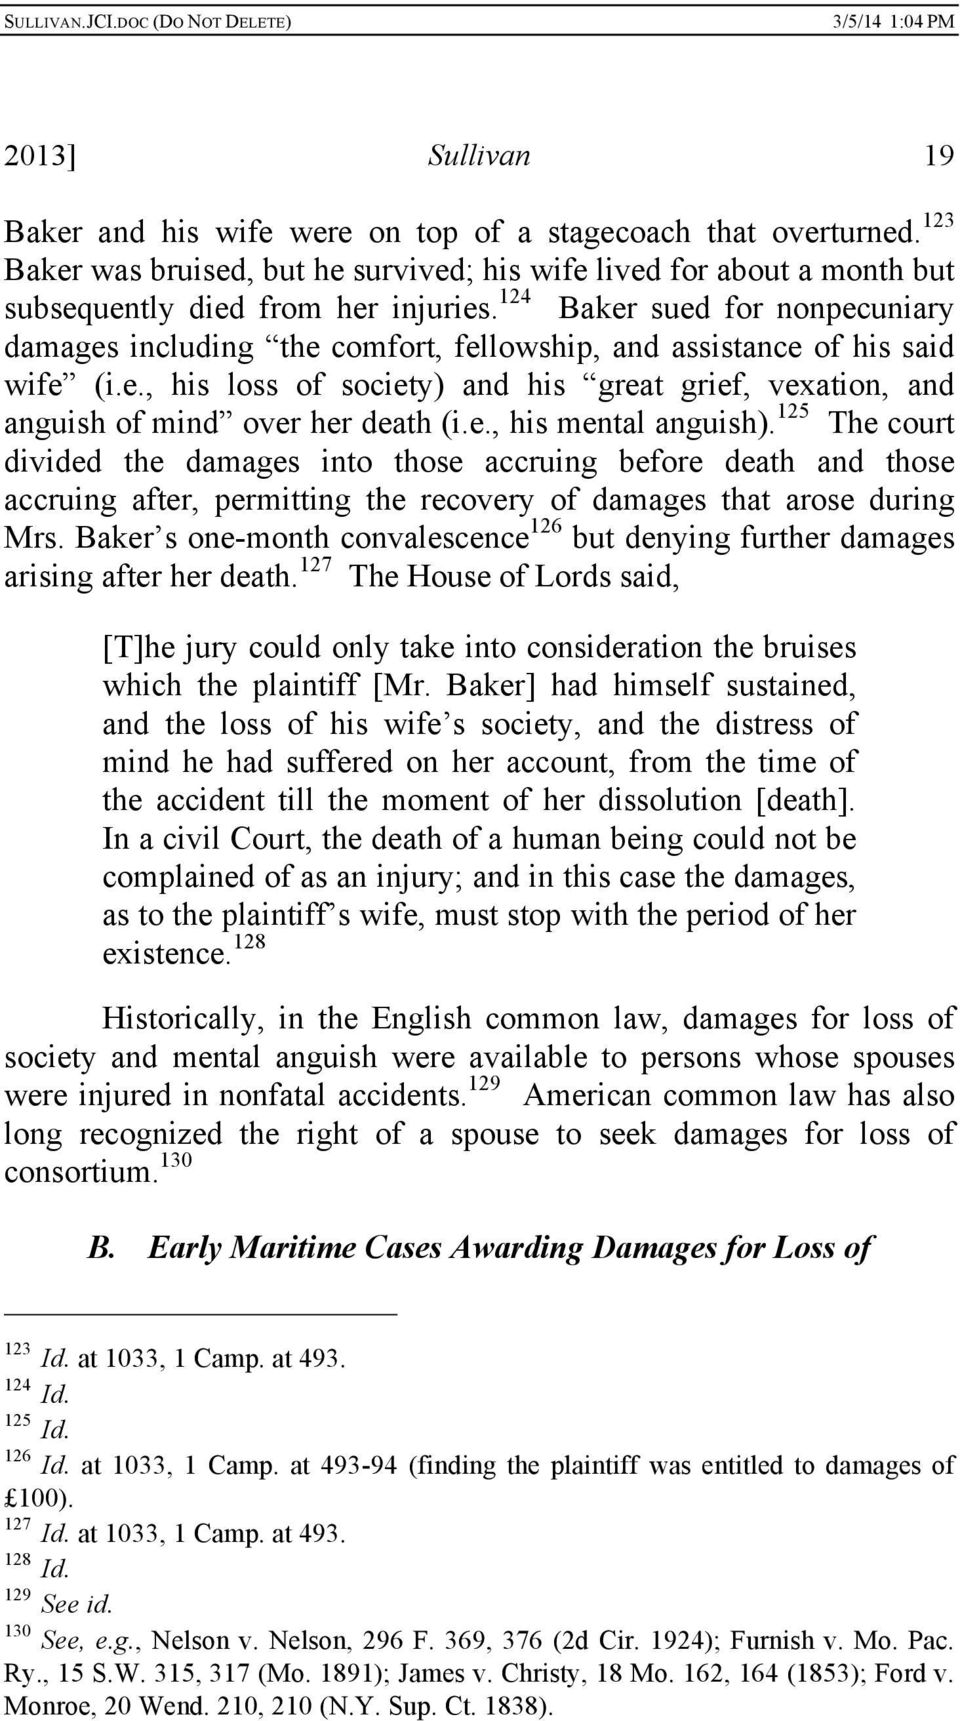 e., his mental anguish). 125 The court divided the damages into those accruing before death and those accruing after, permitting the recovery of damages that arose during Mrs.